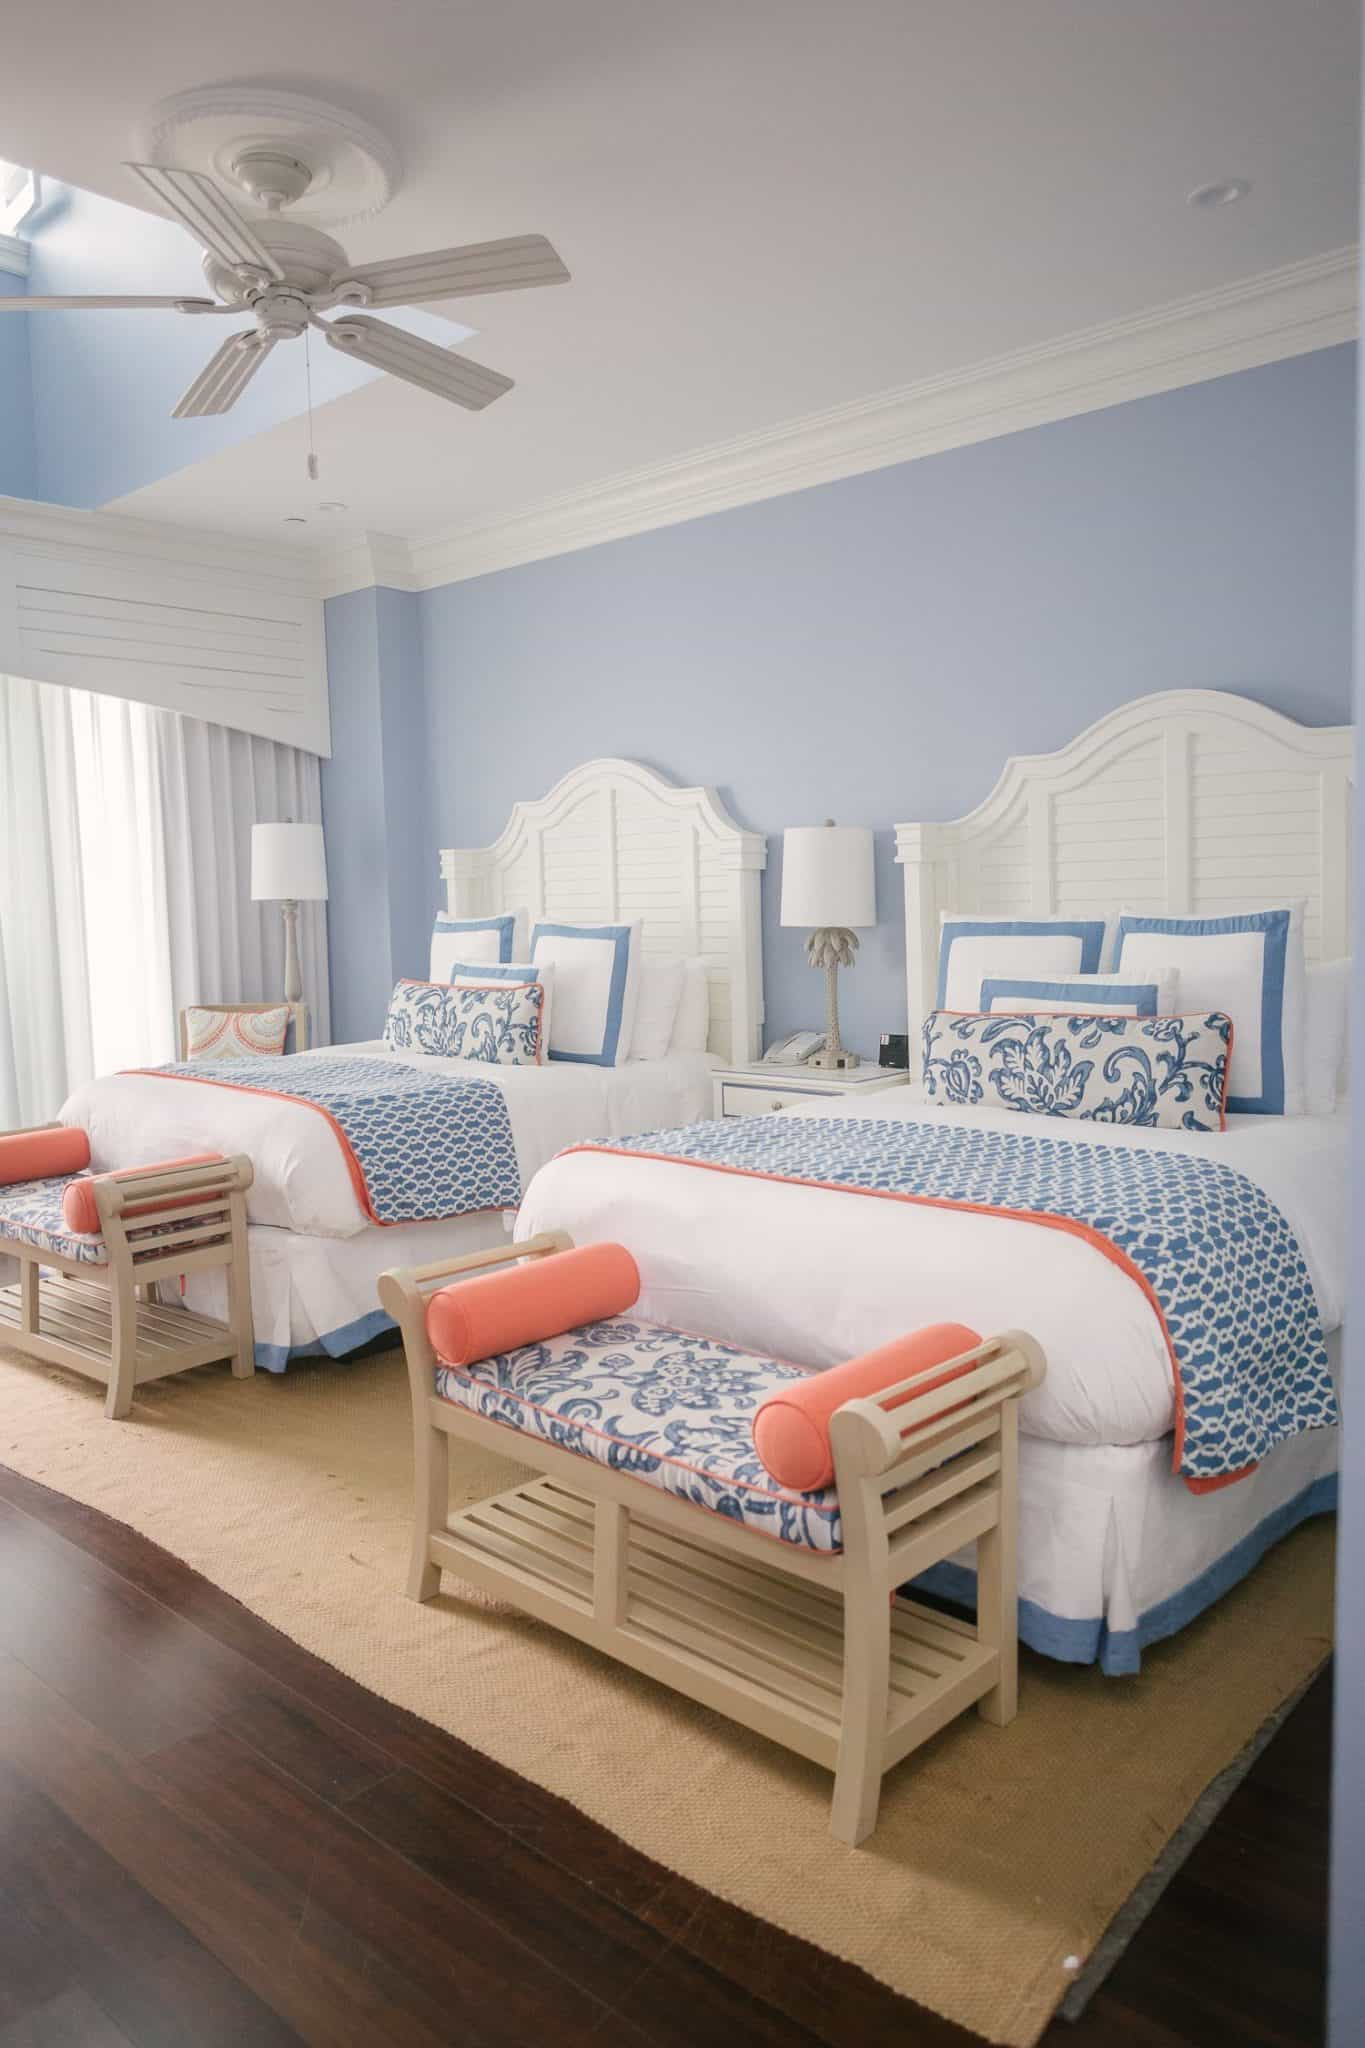 Beach Harbor Hotel room and beds